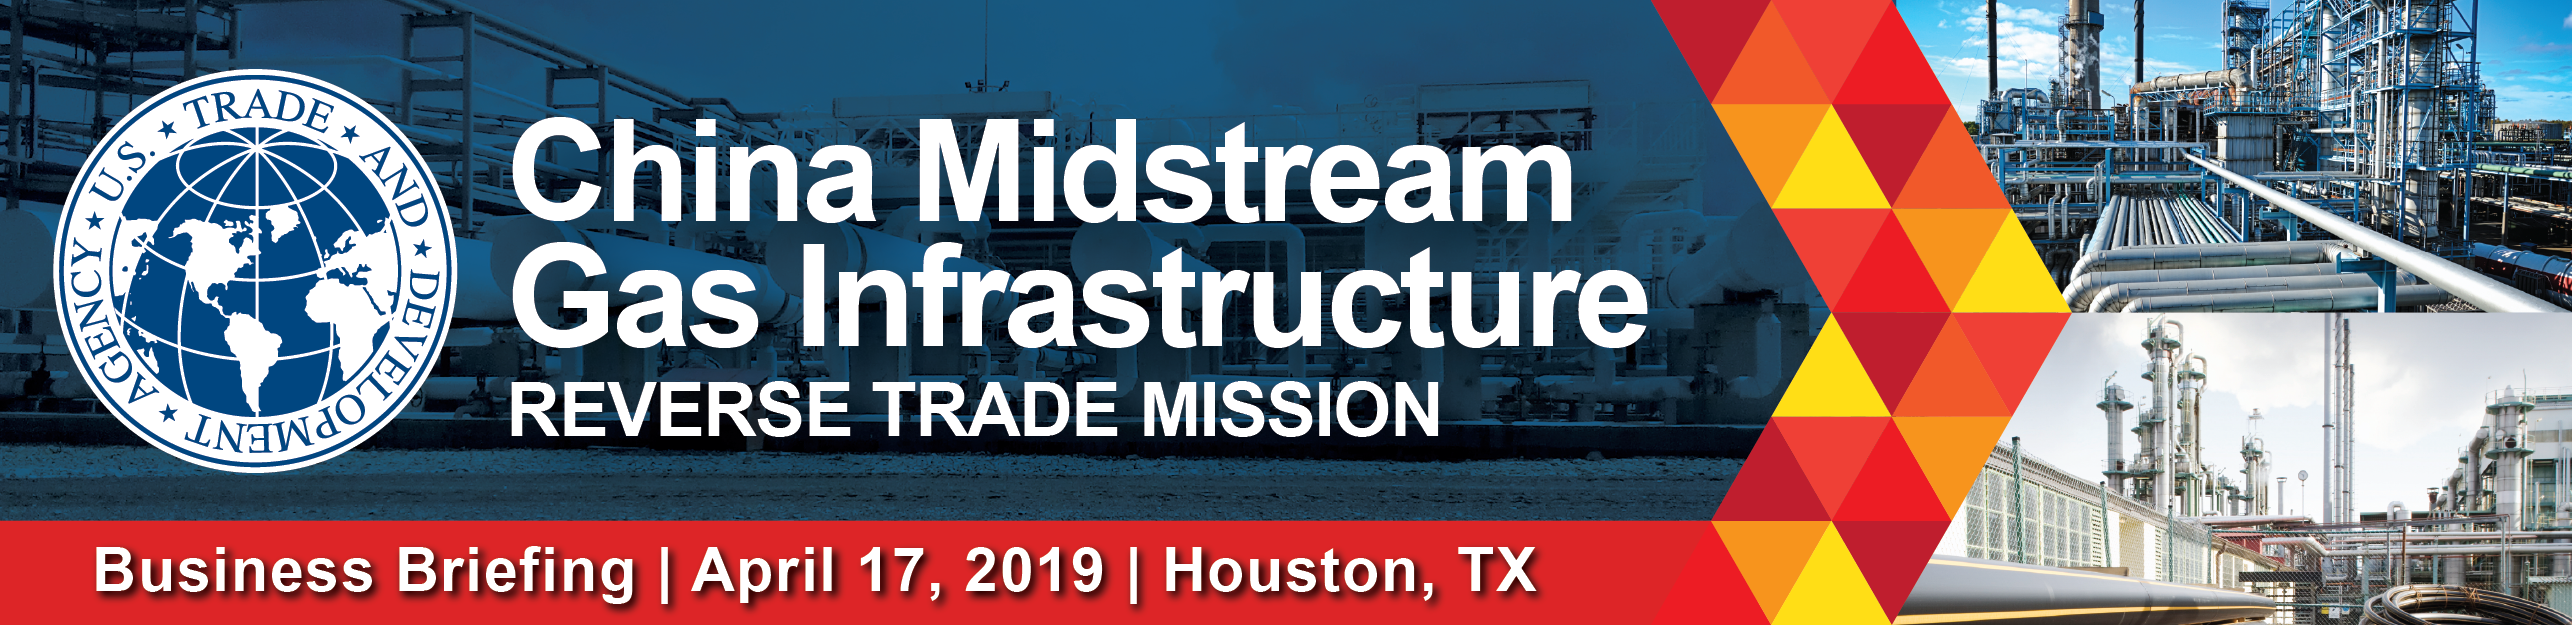 2019 China Midstream Gas Infrastructure RTM Business Briefing header April 17 2019-01 (1)